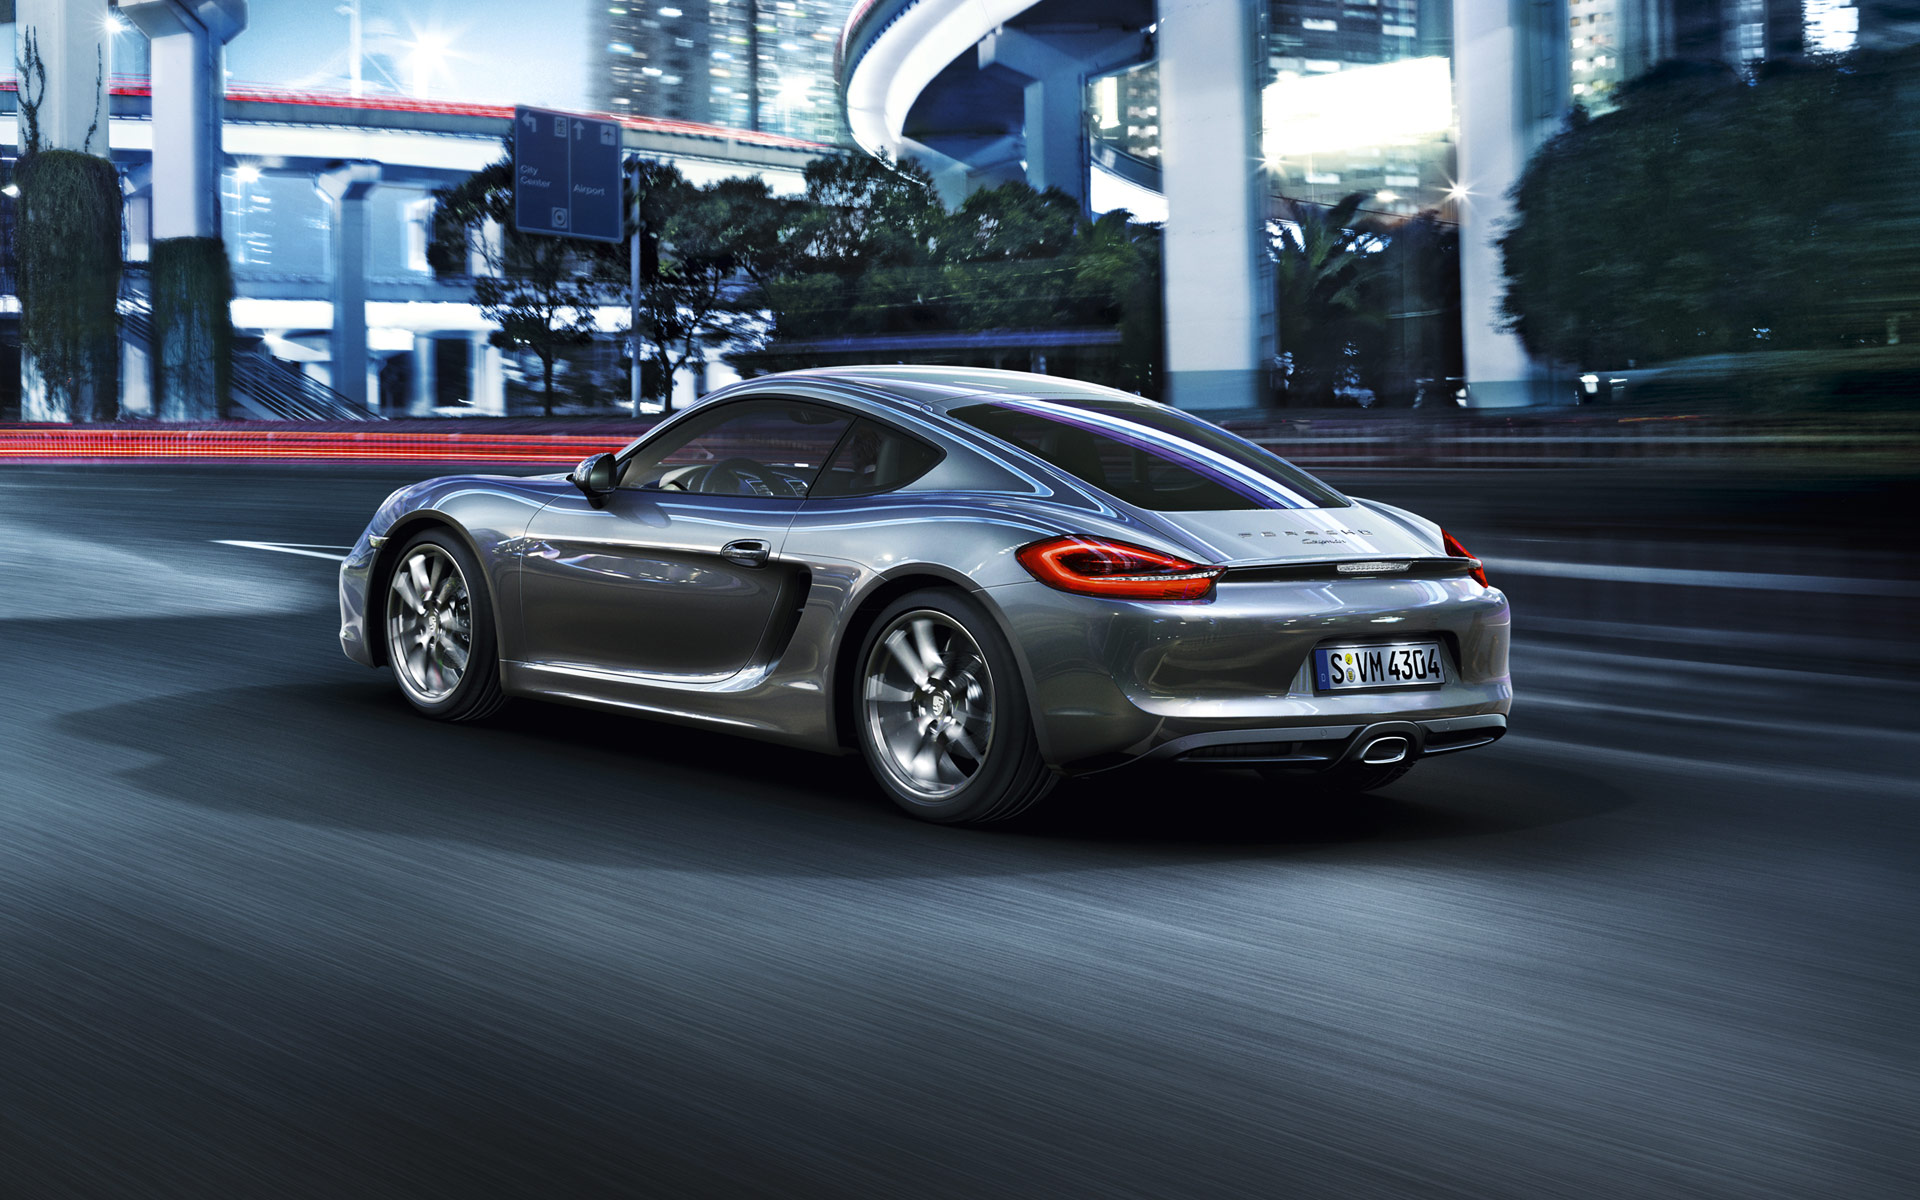 1000 images about porsche cayman on pinterest models agates and